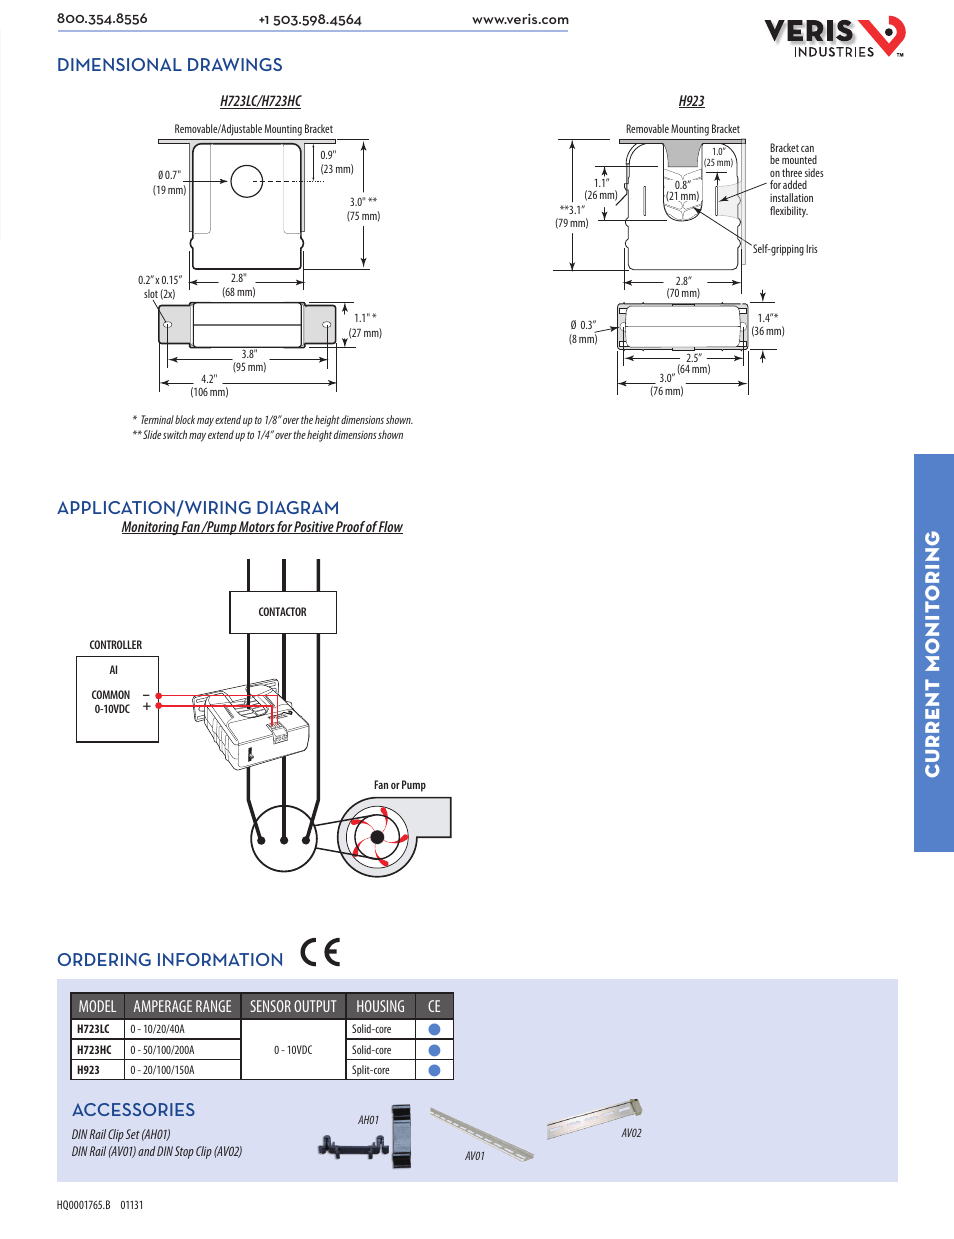 hight resolution of current monit oring dimensional drawings application wiring diagram ordering information accessories